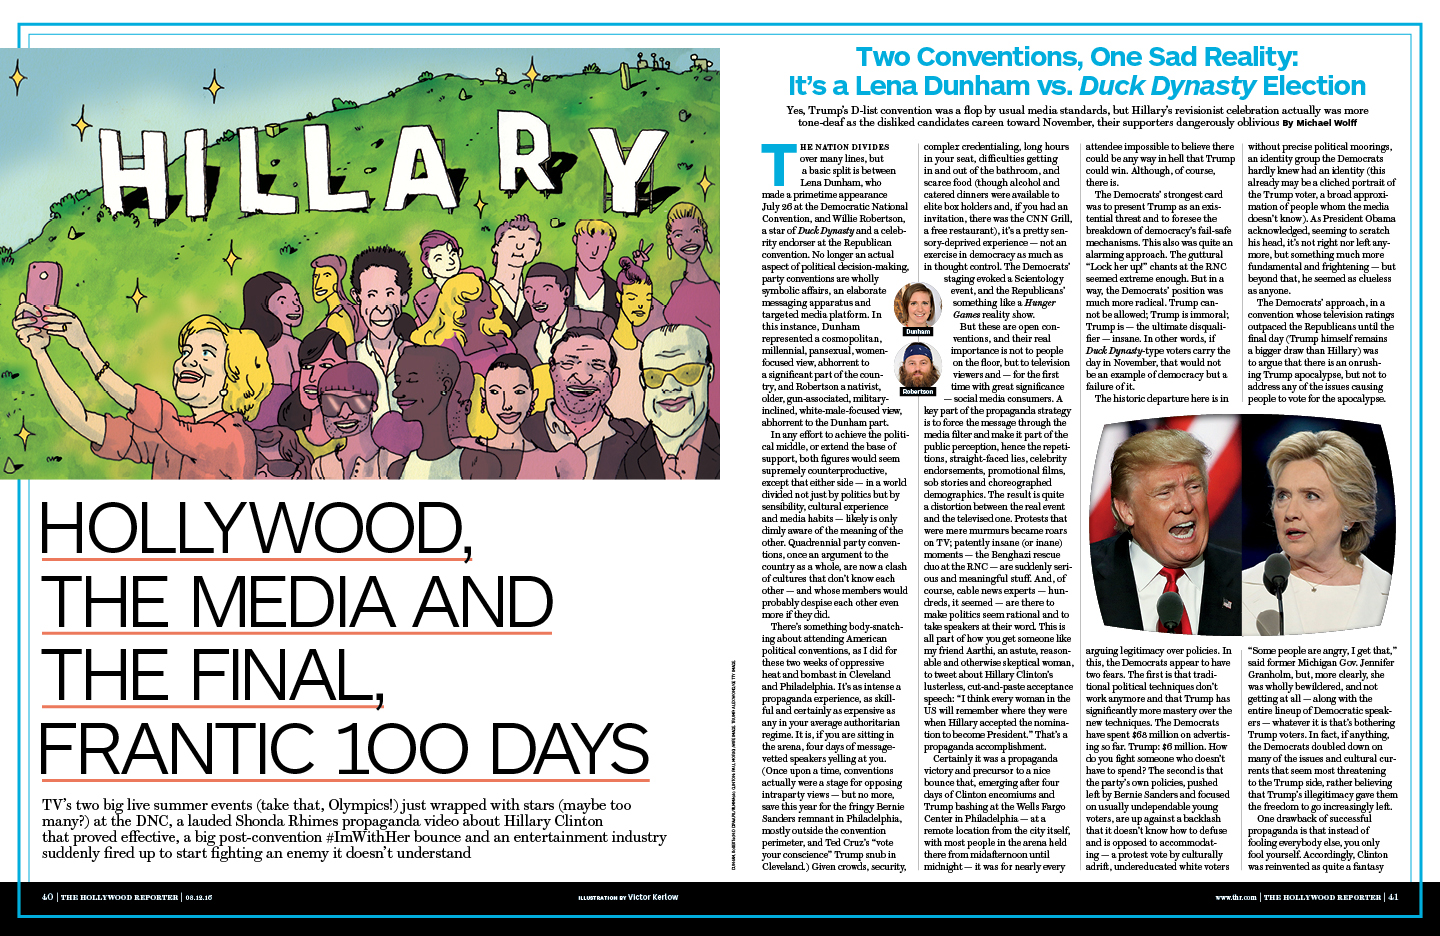 Hollywood, The Media and the Final, Frantic 100 Days / The Hollywood Reporter / 8.12.16 / kelsey stefanson / art direction + graphic design / yeskelsey.com